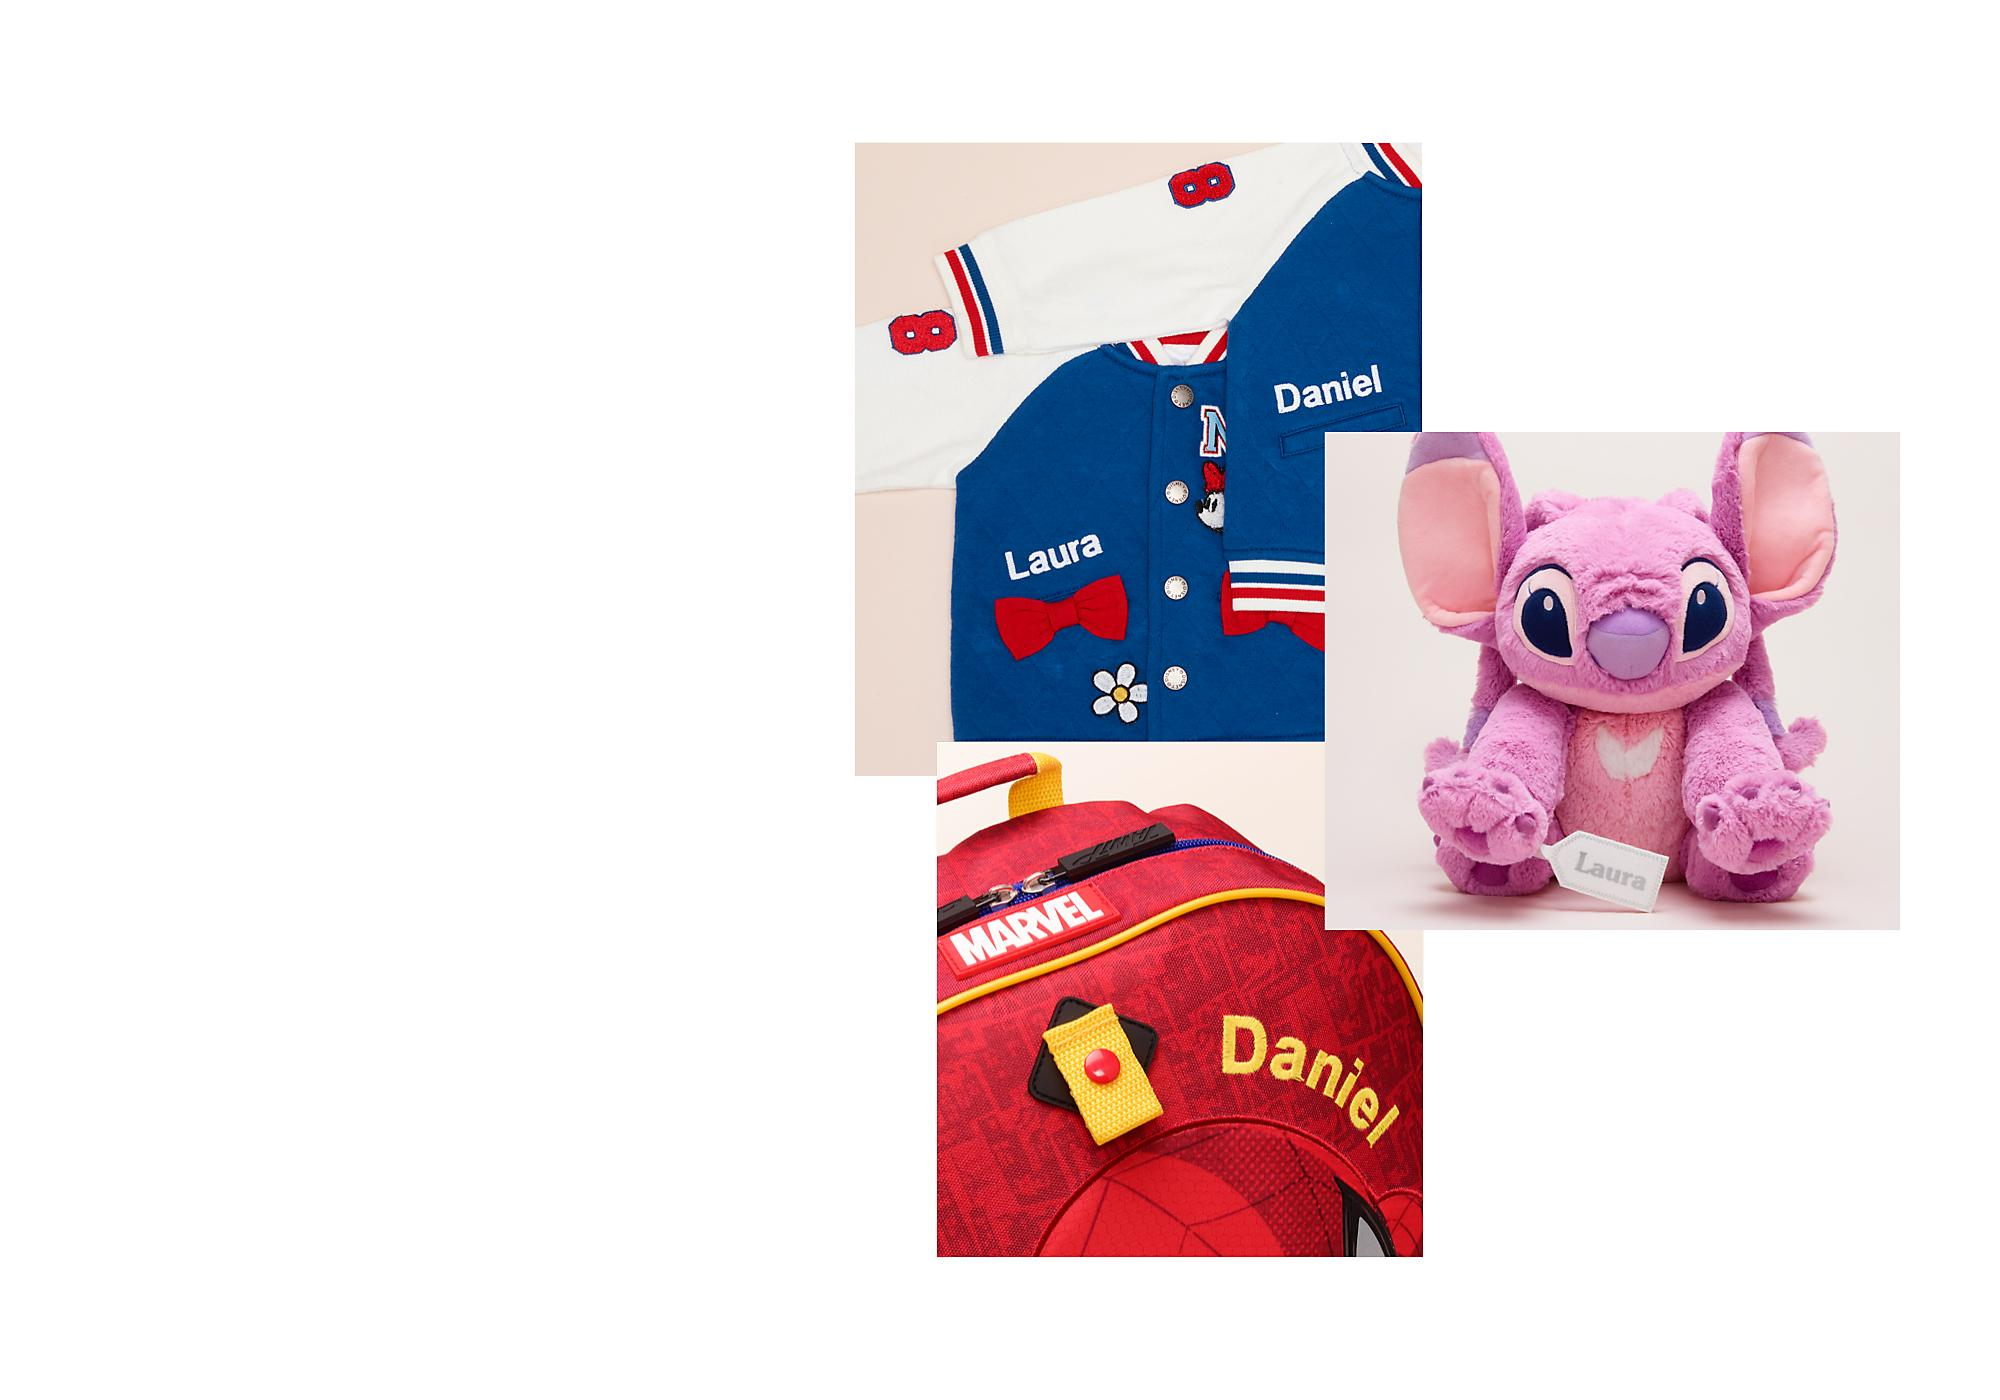 Personalised Gifts Ideas - Soft Toys, Clothing & More | shopDisney